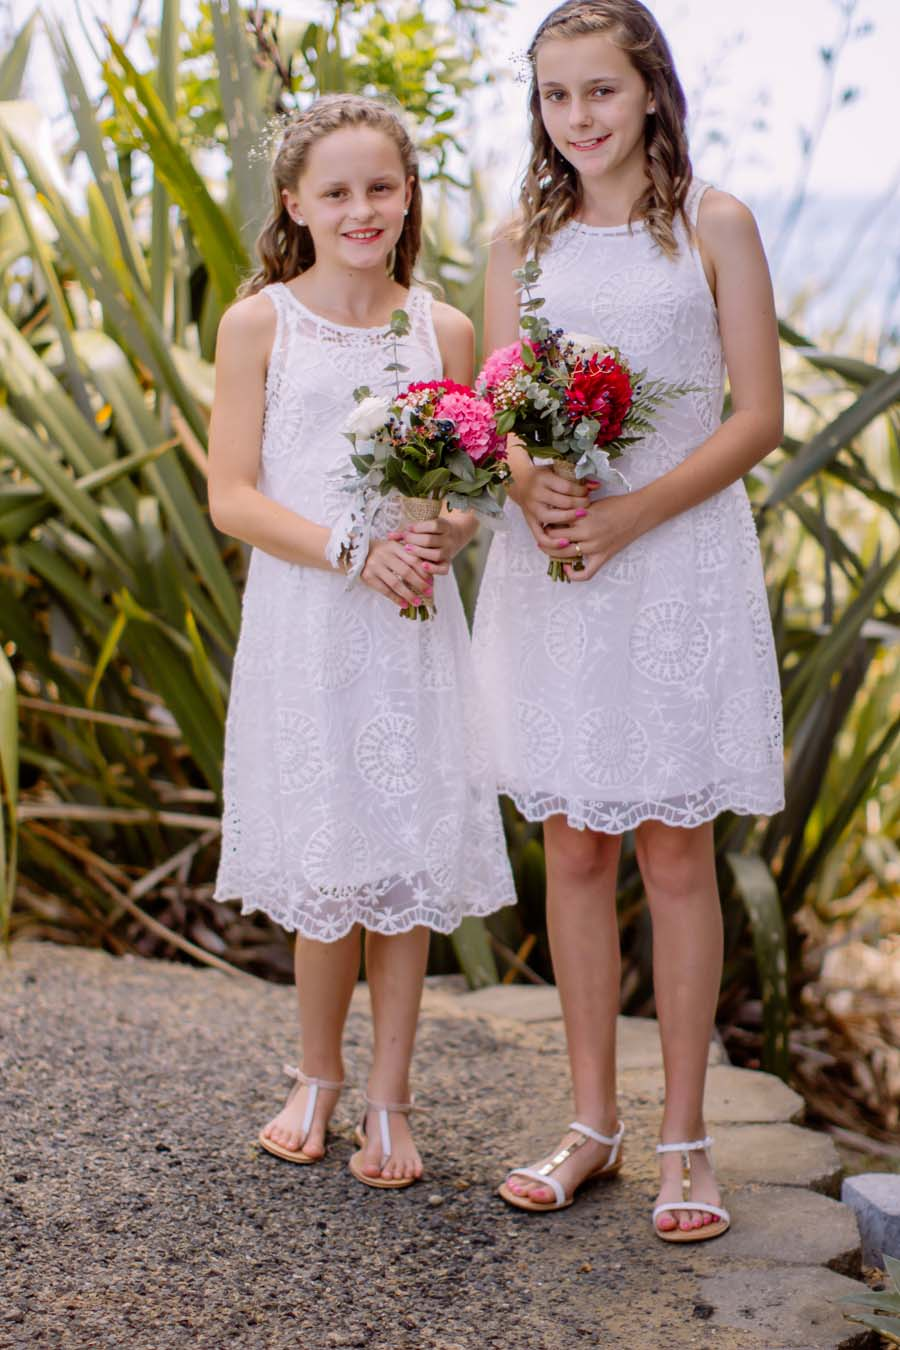 nz_wedding_photographer_castaways_waiuku-796